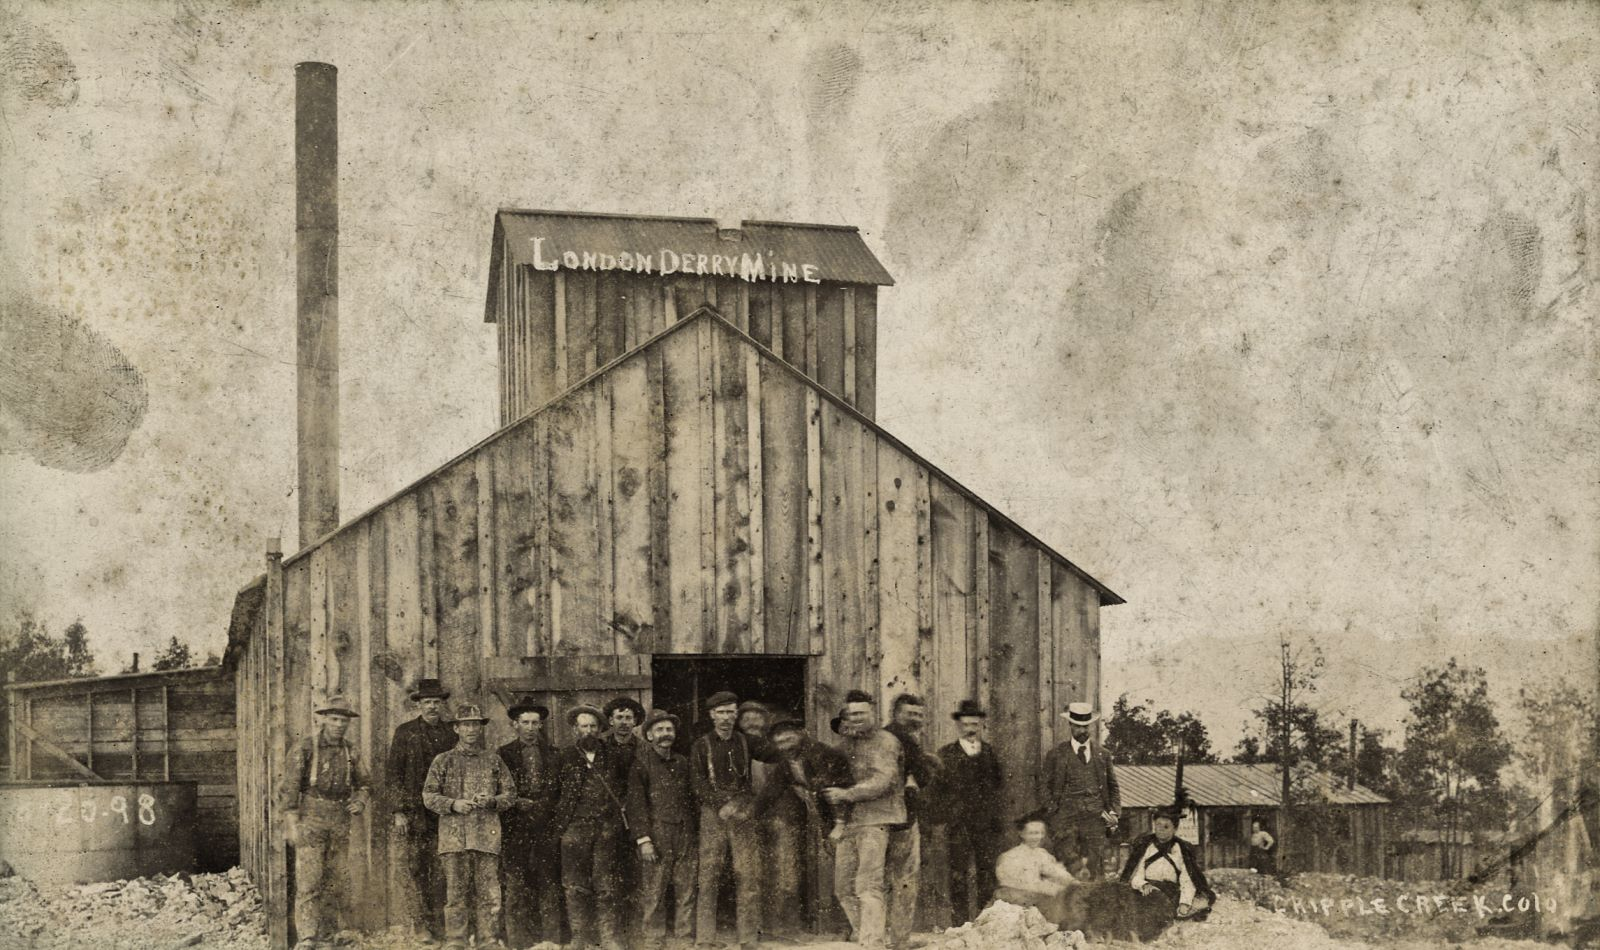 A group of miners pose at the doorway on the south gable end of what I believe to be the new shaft house after the fire earlier in 1898 that burned the older structure of the Londonderry Mine. Located on Ironclad Hill, at Midway, near Cripple Creek (Teller County), Colorado. The men wear work clothes and a couple of them seem to joke about a little as they are moving about, messing up the sharpness/focus of that part of the image. Two women sit on the ground in front of two well-dressed men. A woman stands with her hand on her hip in the doorway of a building in the distance on the right. The building is made from wood planks, has a corrugated tin roof, a smoke stack, a coal shed on the left with a tank for possible water in front of that shed. Outside the view to the right would a ore-house been located and also the balloon-loop of the Golden Circle at Vista Grande, also known as Midway as a Trolley stop on the High Line.